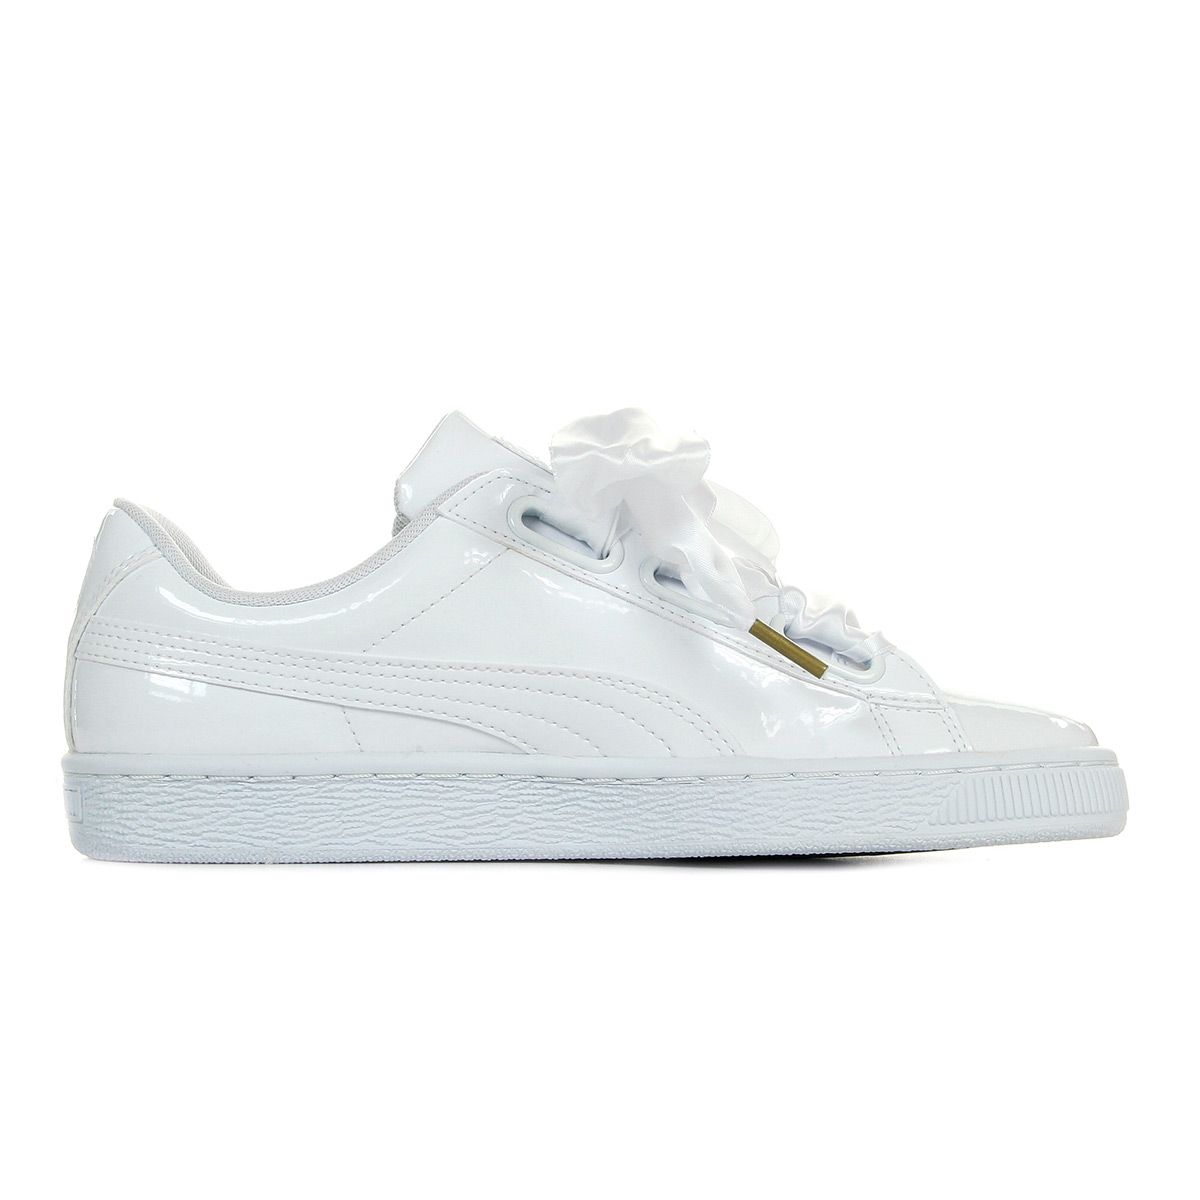 Details about Puma shoes sneakers woman basketball heart patent wns white size white show original title